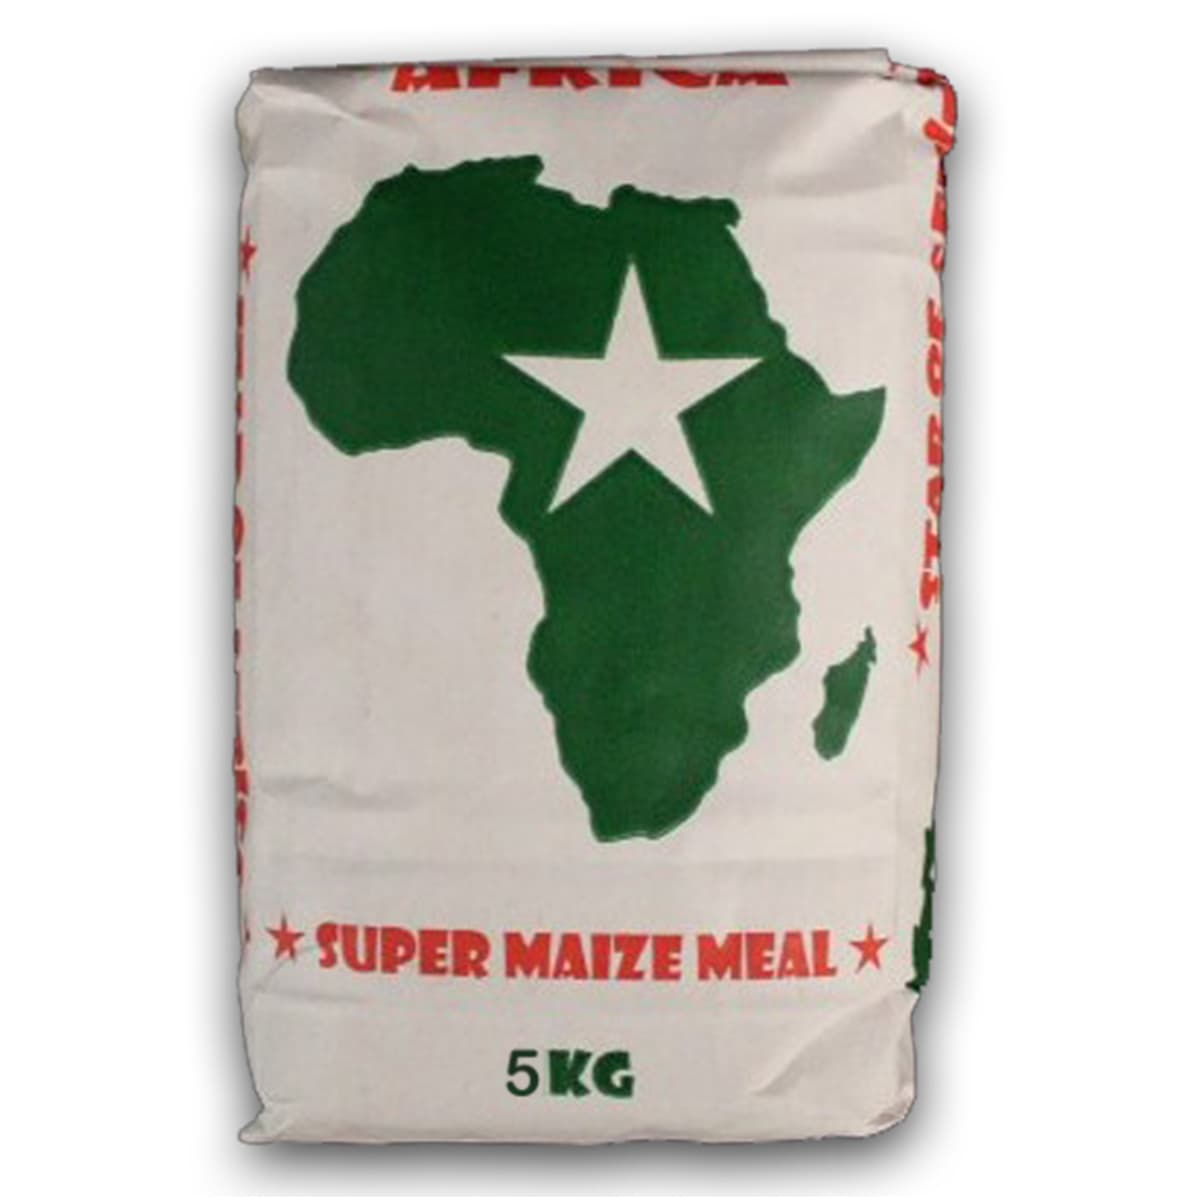 Buy Star of Africa Super Maize Meal - 5 kg